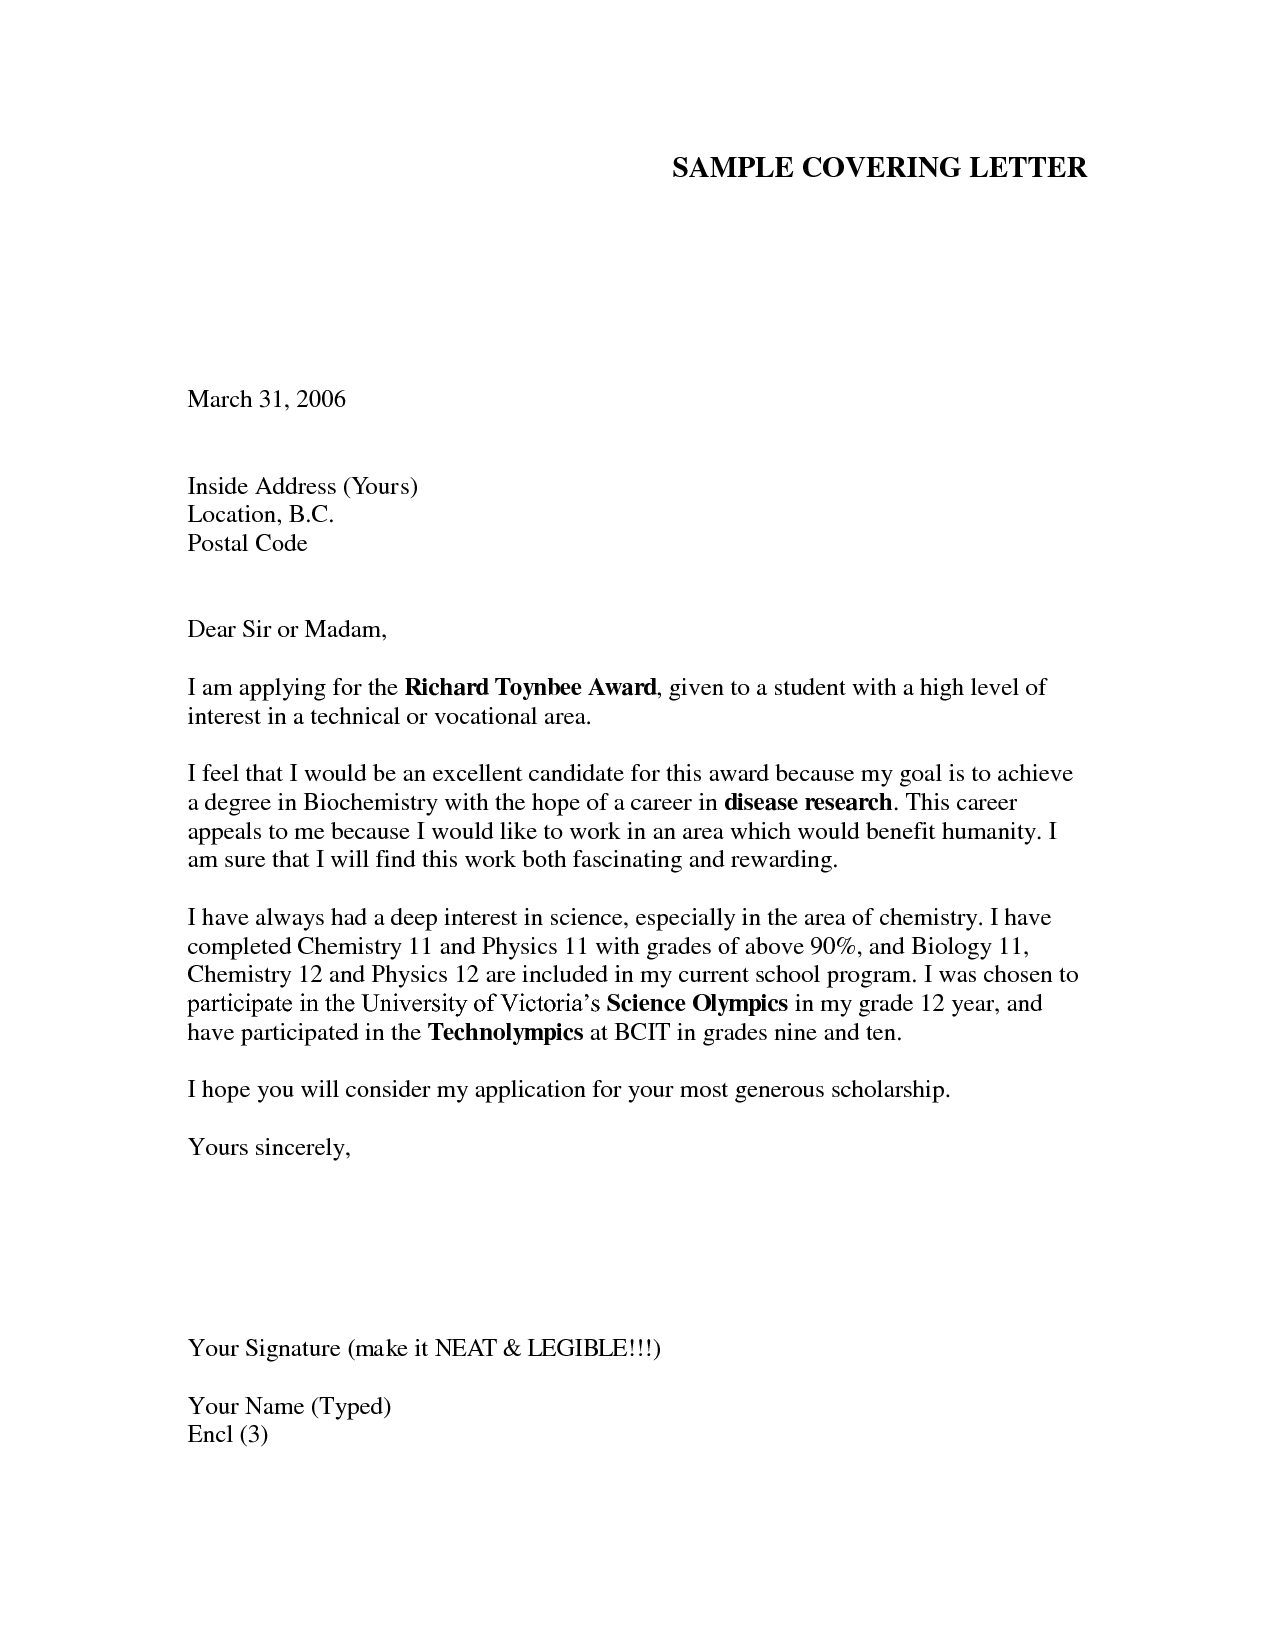 cover letter format for job application